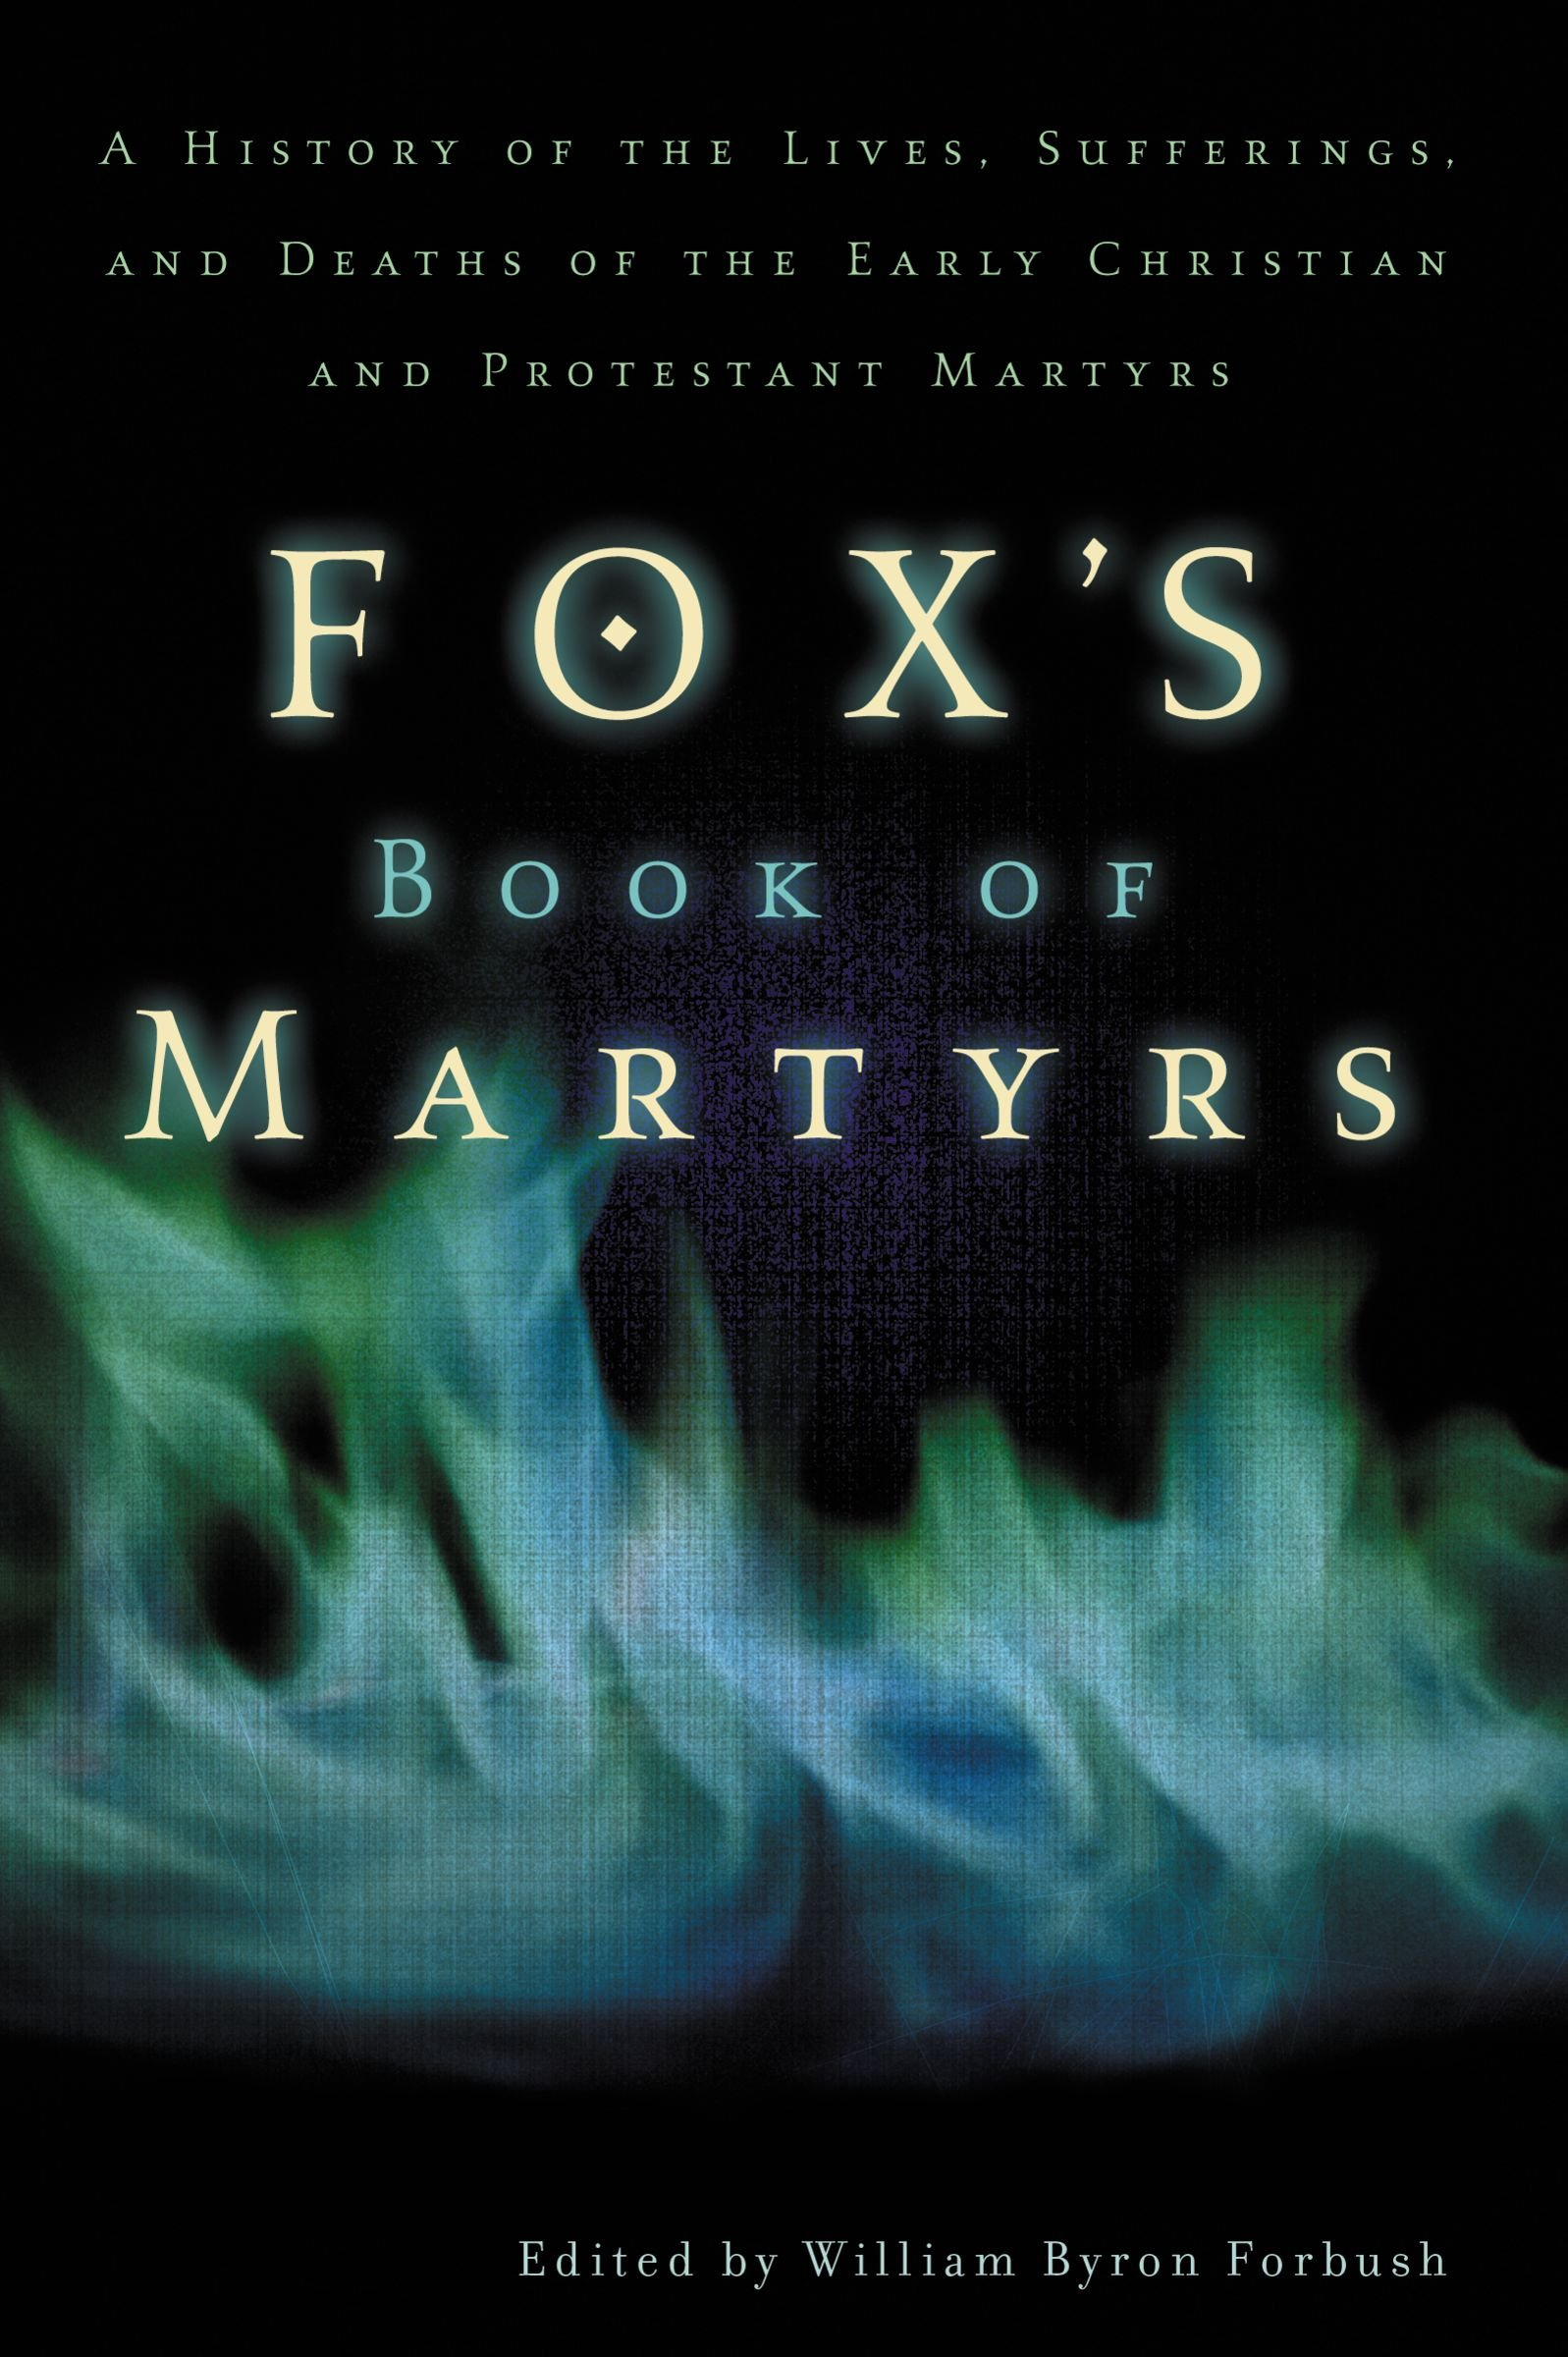 Fox's Book Of Martyrs: A History Of The Lives, Sufferings, And Deaths Of  The Early Christian And Protestant Martyrs: William Byron Forbush:  9780310243915: